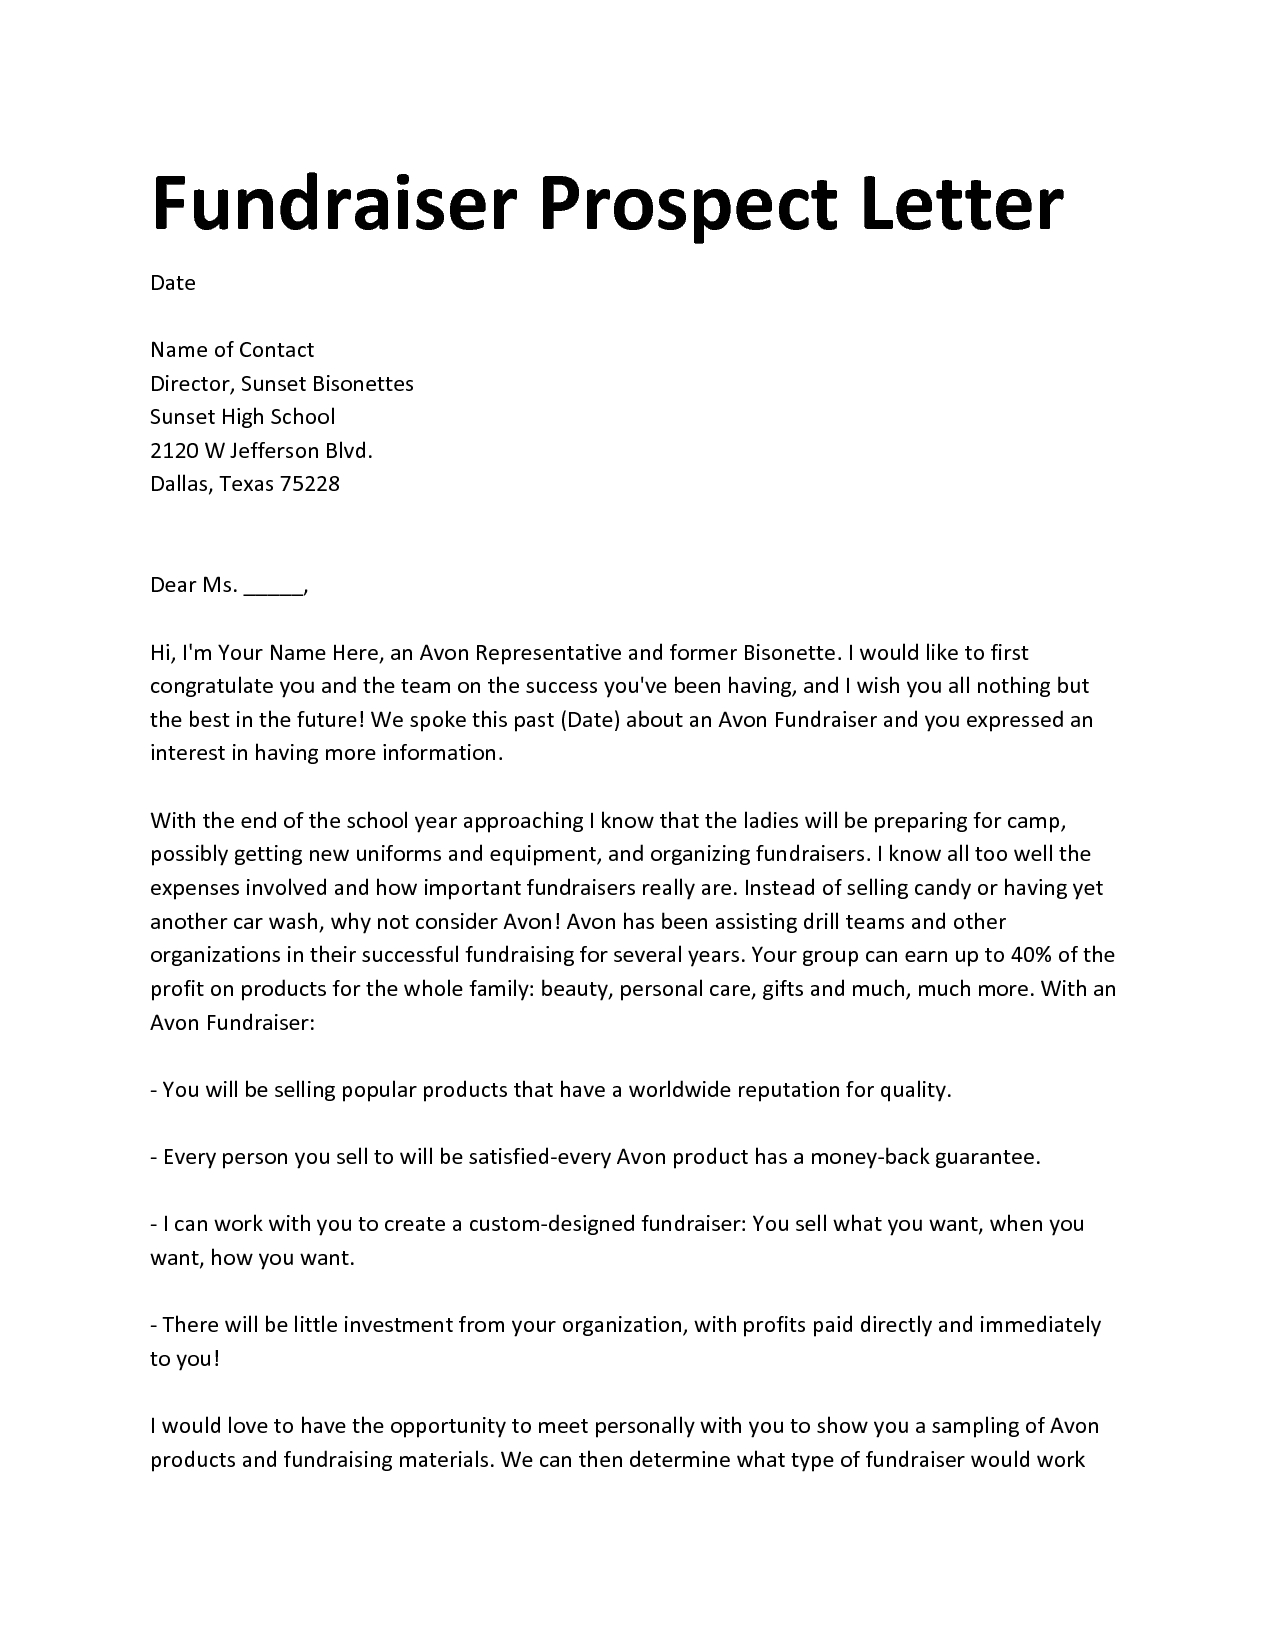 Fundraiser Proposal Letter Template - Professional Fundraiser Cover Letter Custom Paper Academic Writing